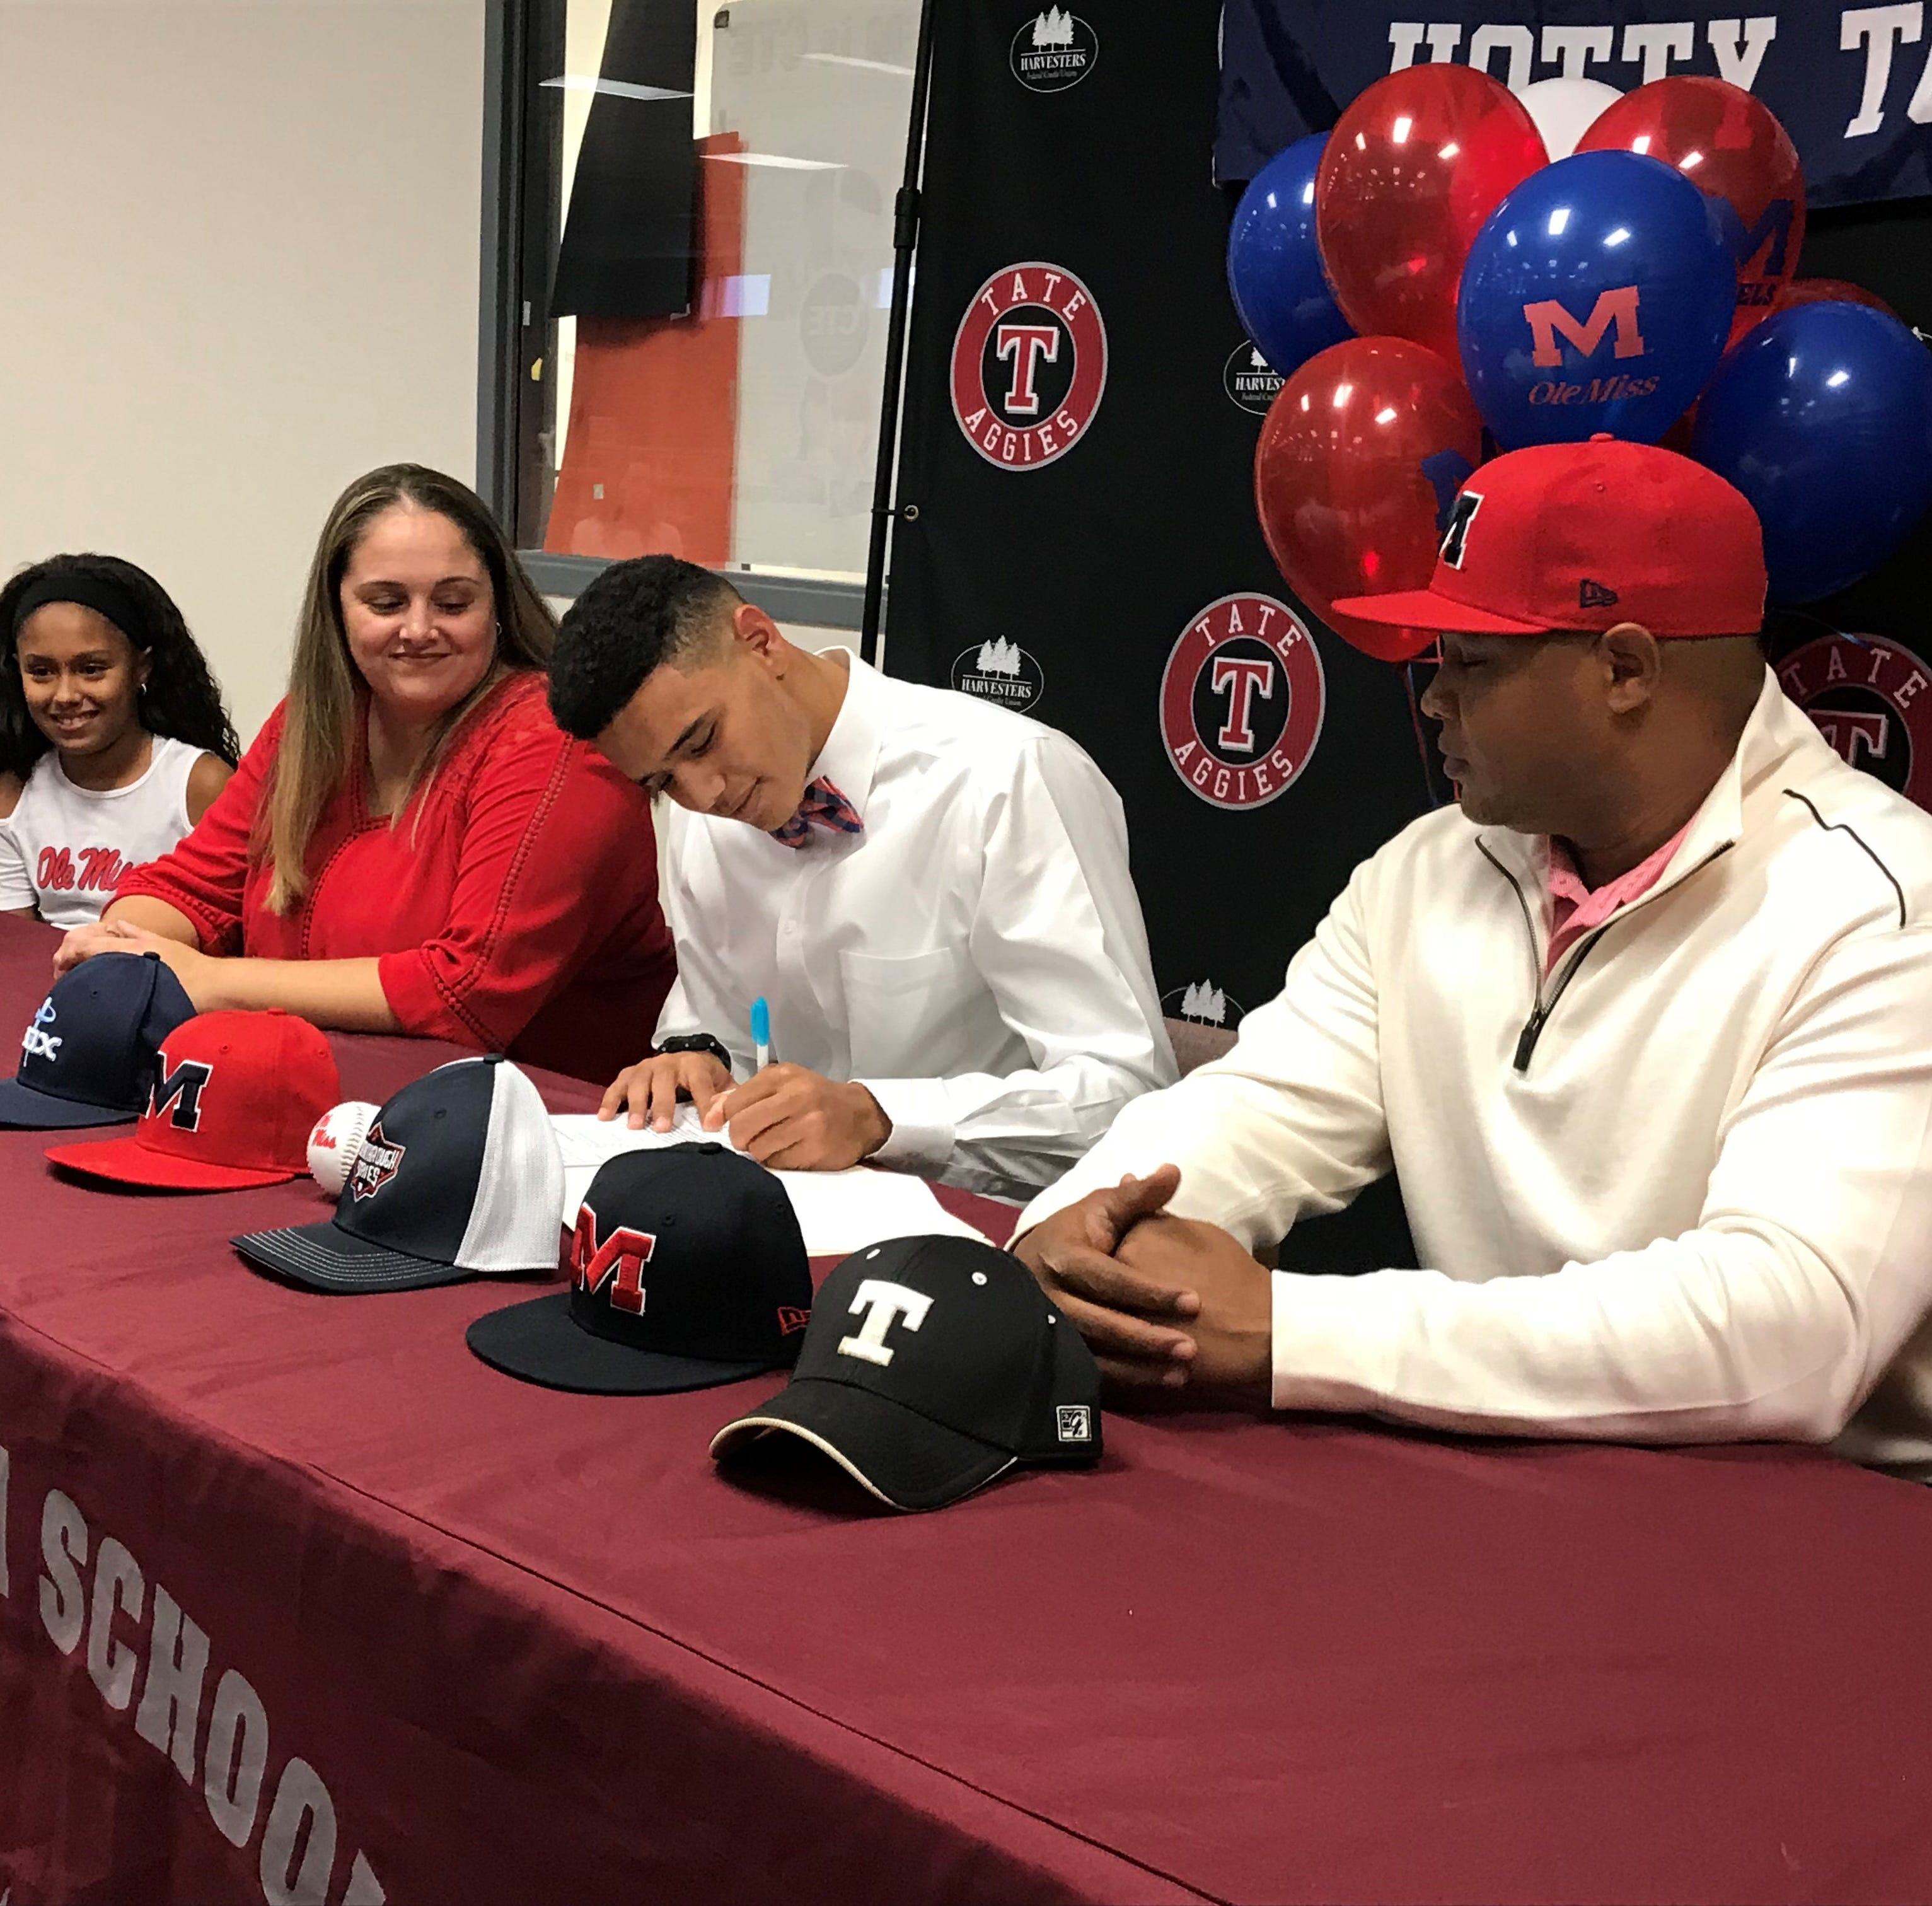 Tate High's Trey LaFleur inks letter of intent with Ole Miss